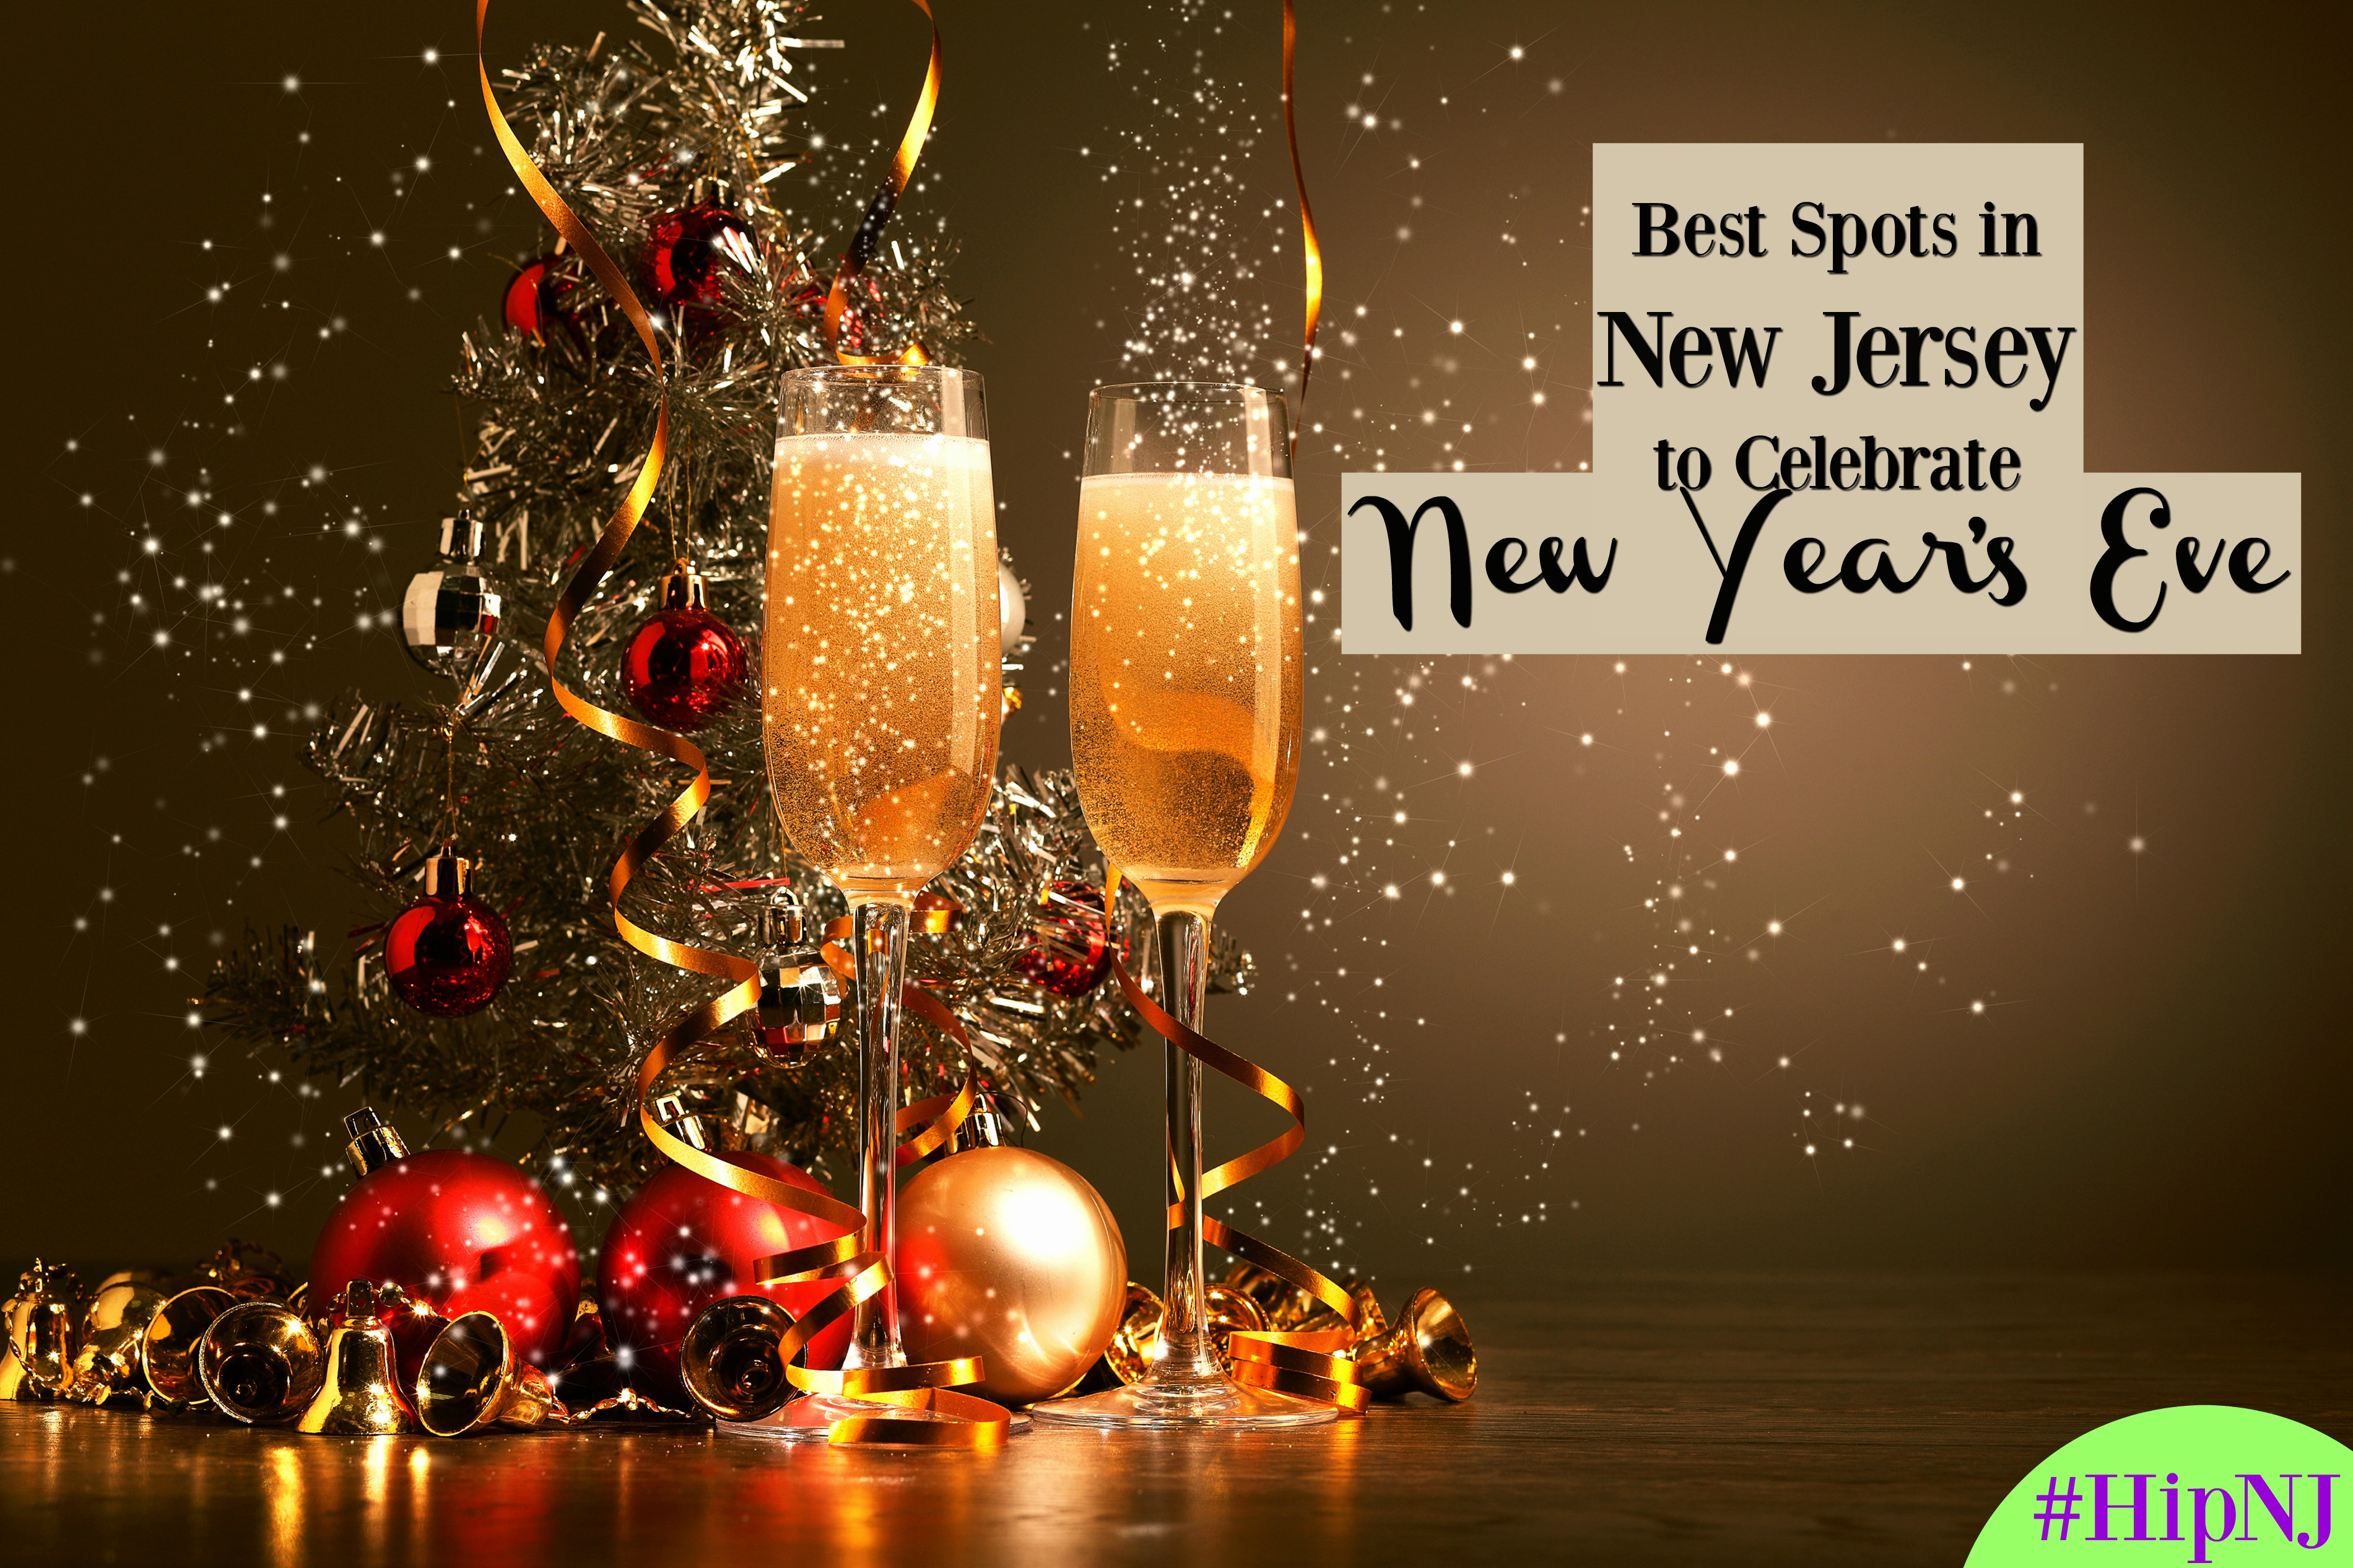 Best Spots in New Jersey to Celebrate New Year's Eve